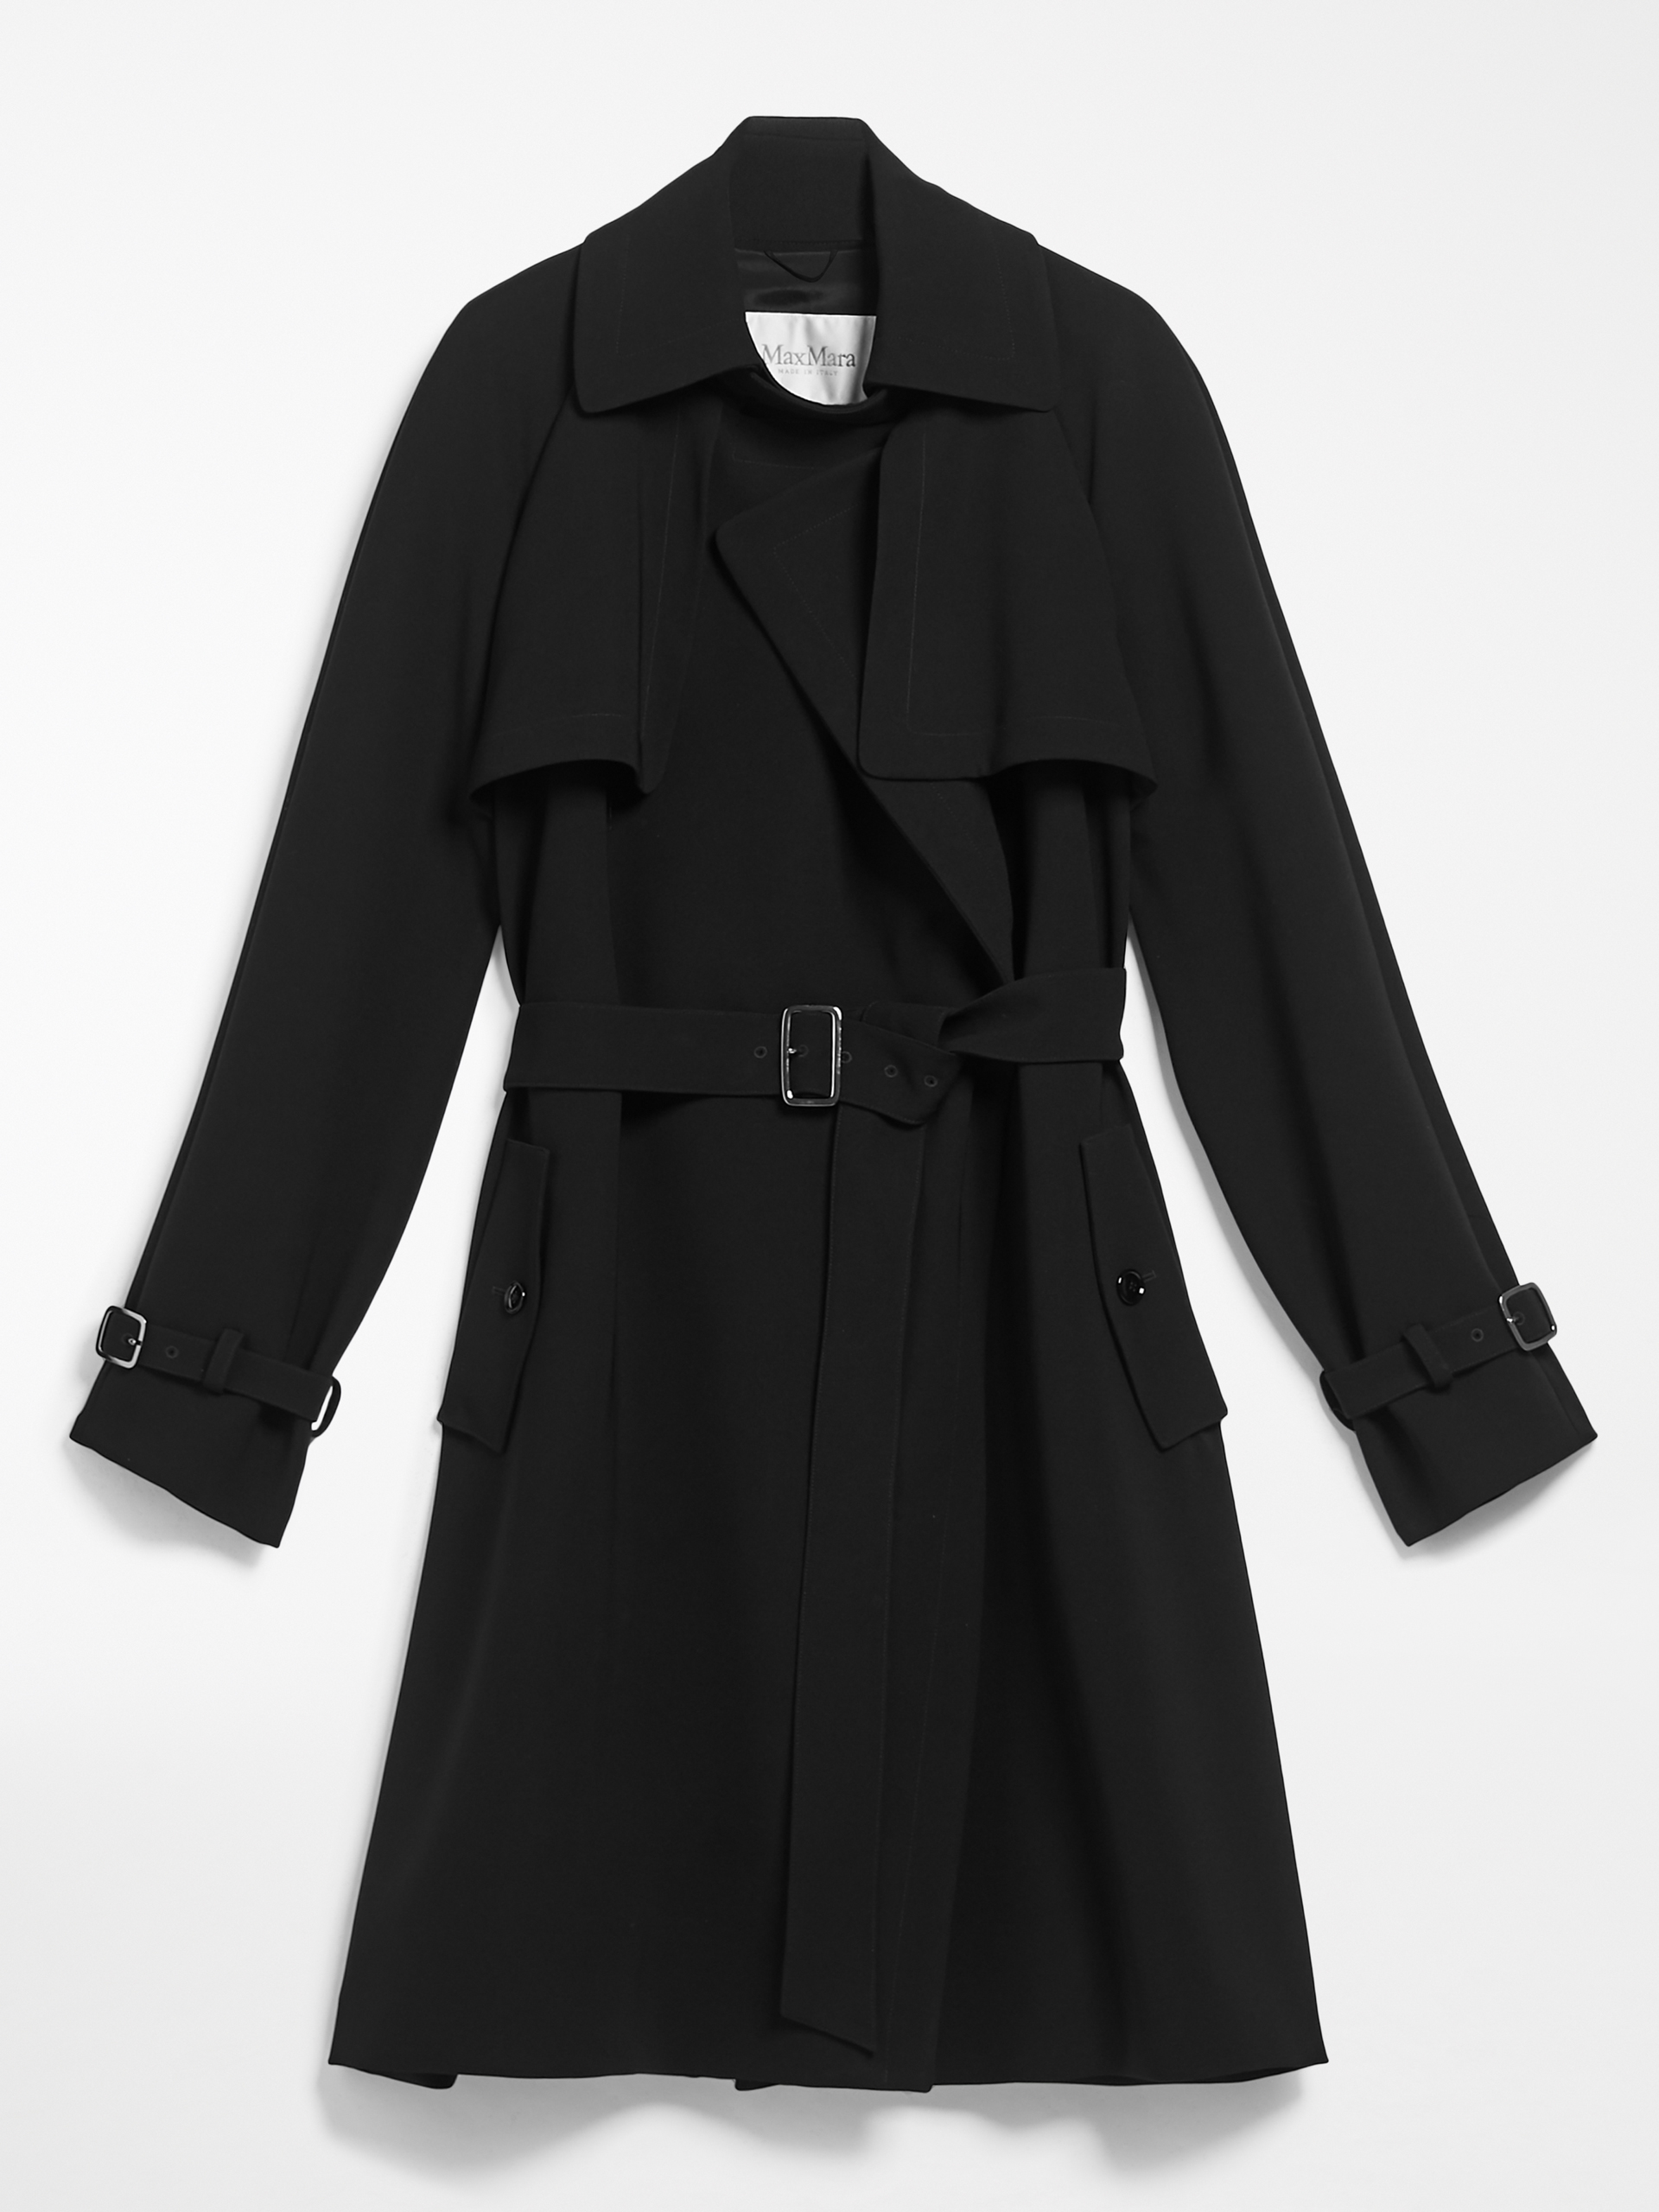 Max Mara Triactete Cady Trench Coat in black